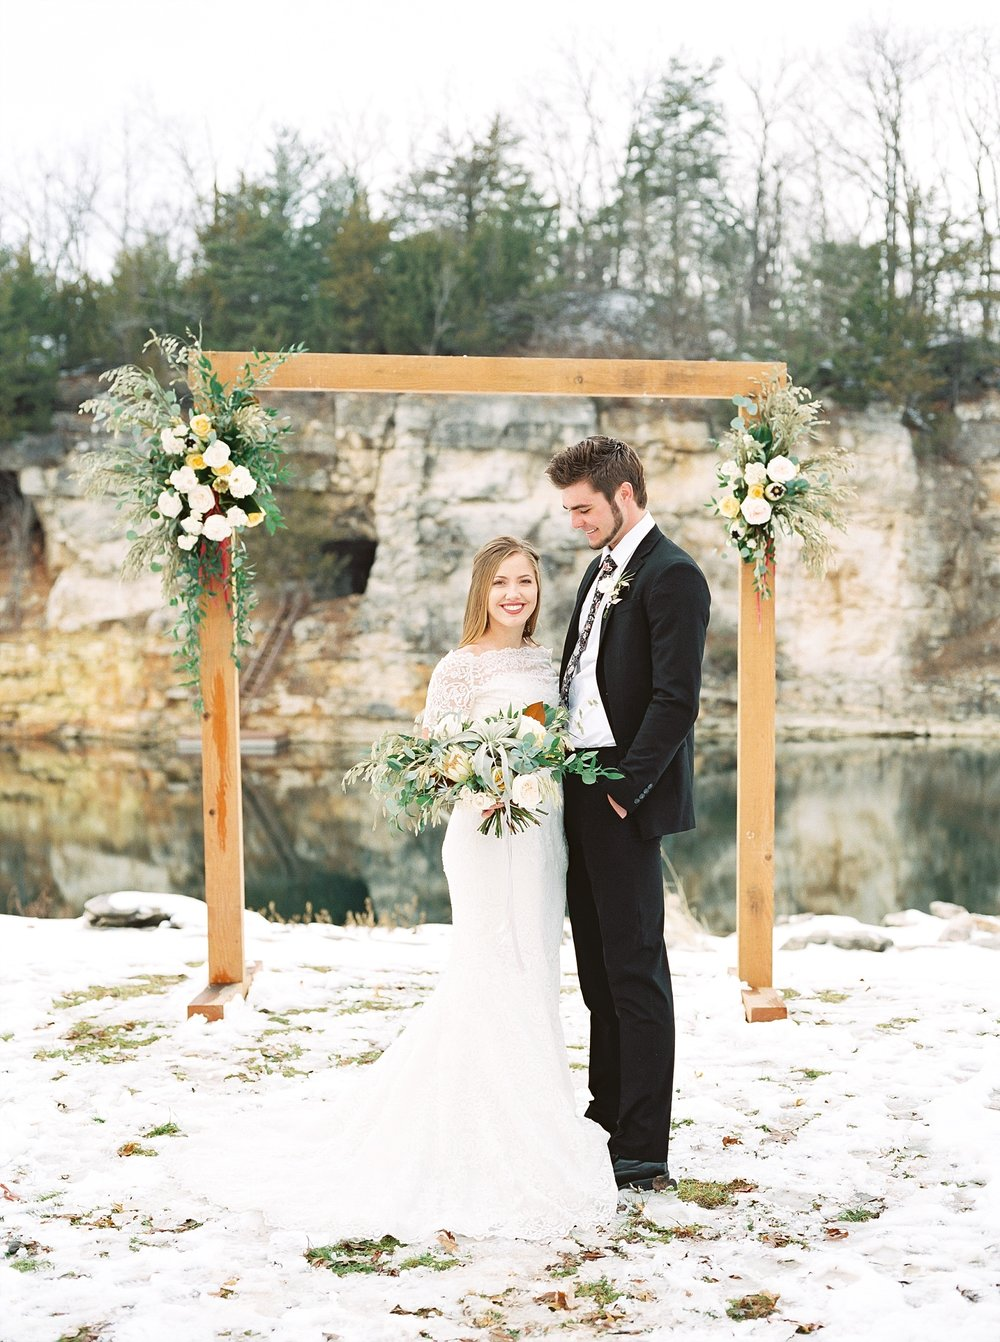 Snowy Winter Wedding at Wildcliff Events Lake With Earthy Jewel Tones and Organic Refined Style by Kelsi Kliethermes Photography Kansas City Missouri Wedding Photographer_0111.jpg